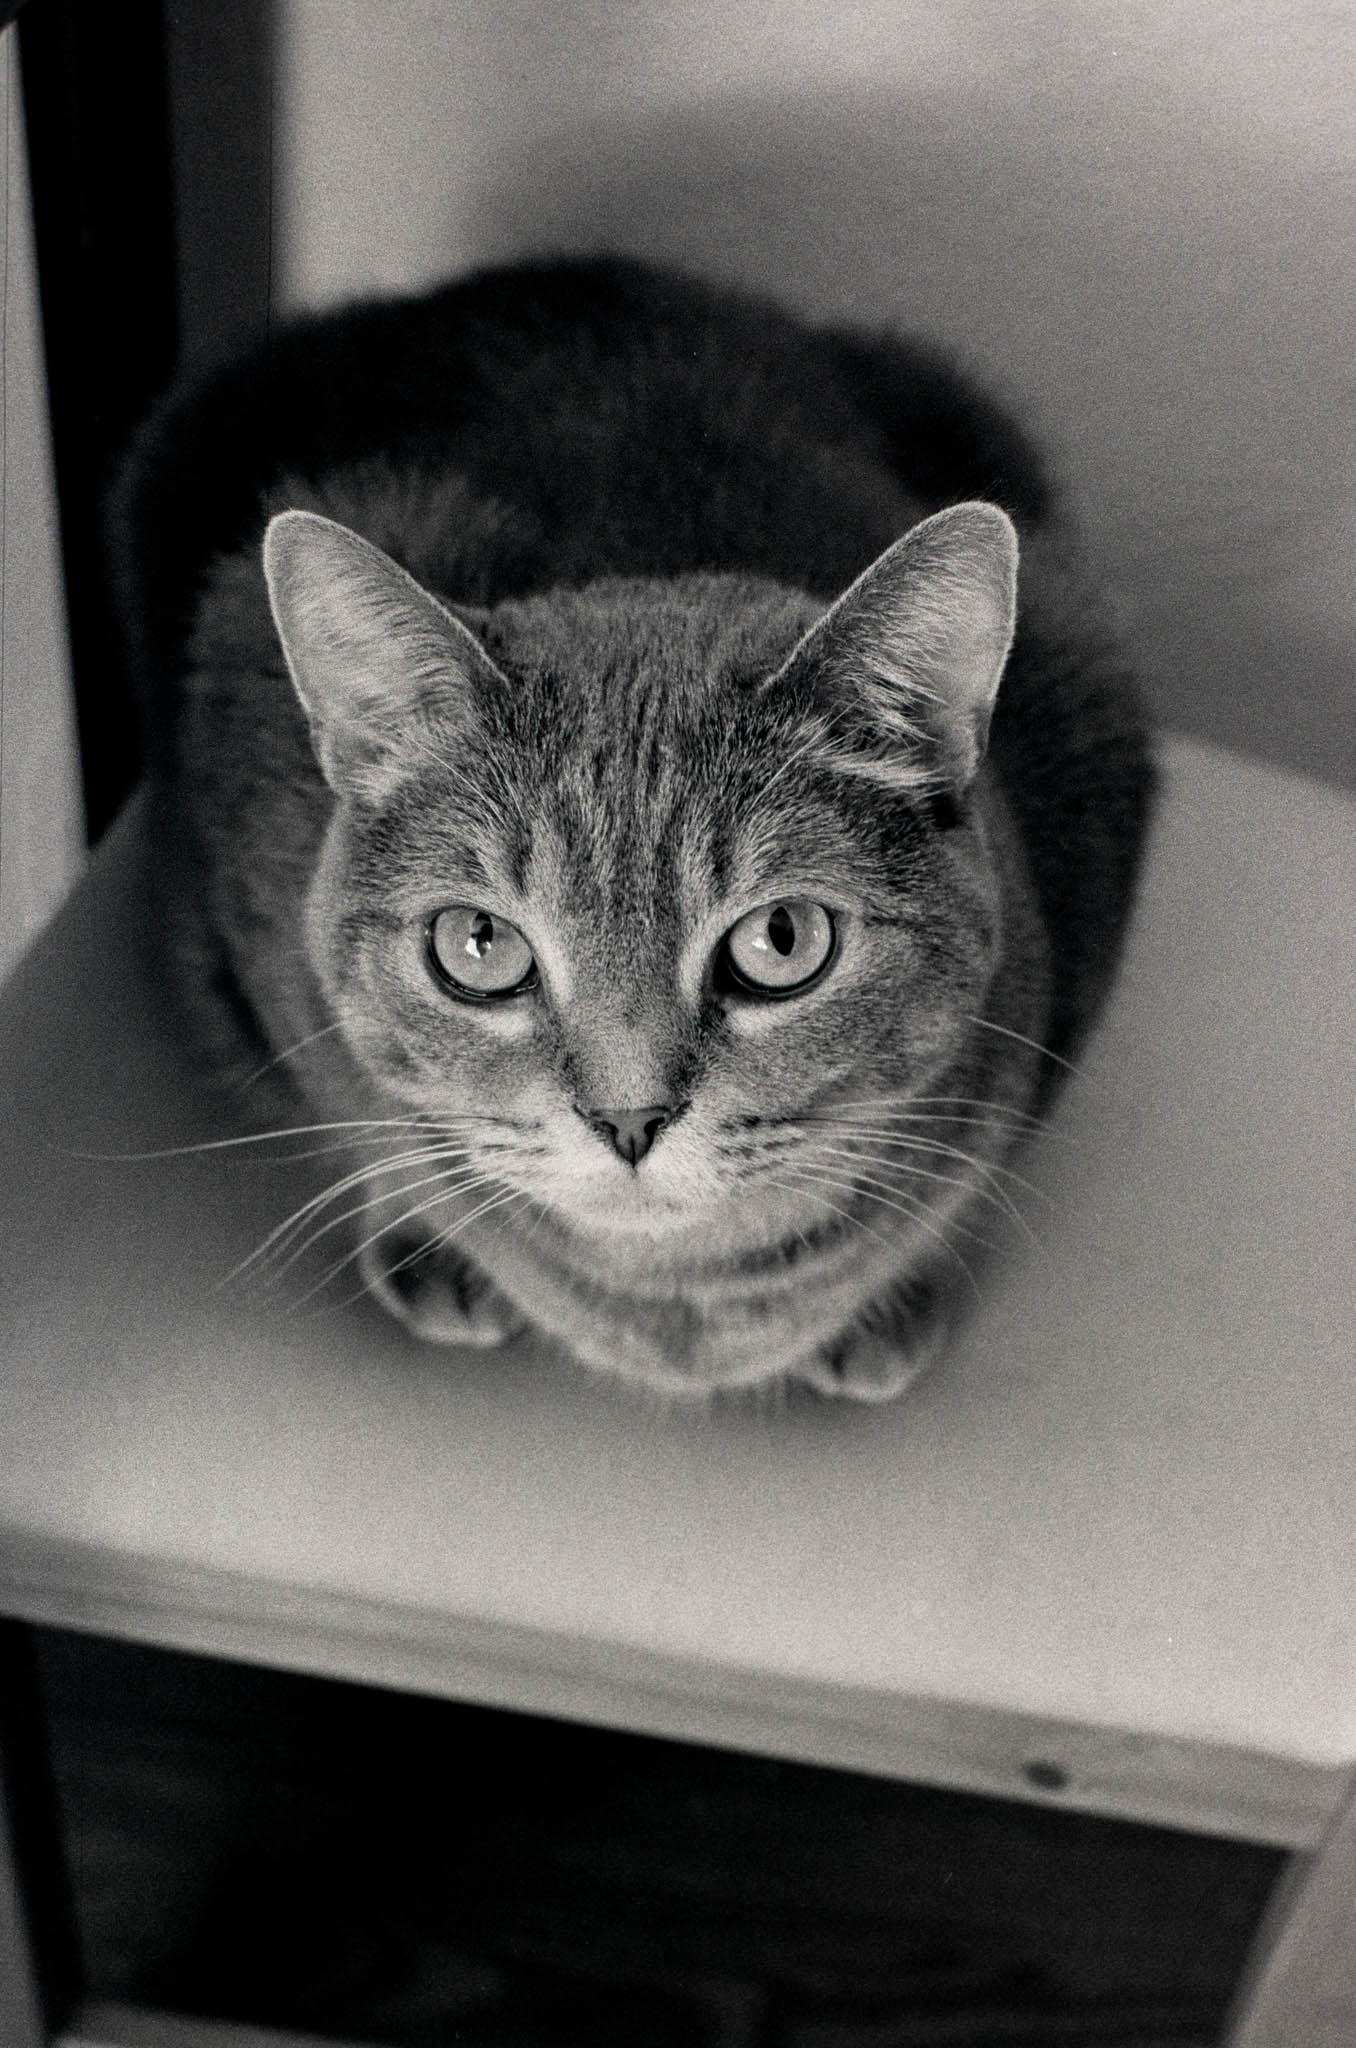 Photo from a roll of Ilford HP5 shot with my Nikon N2020